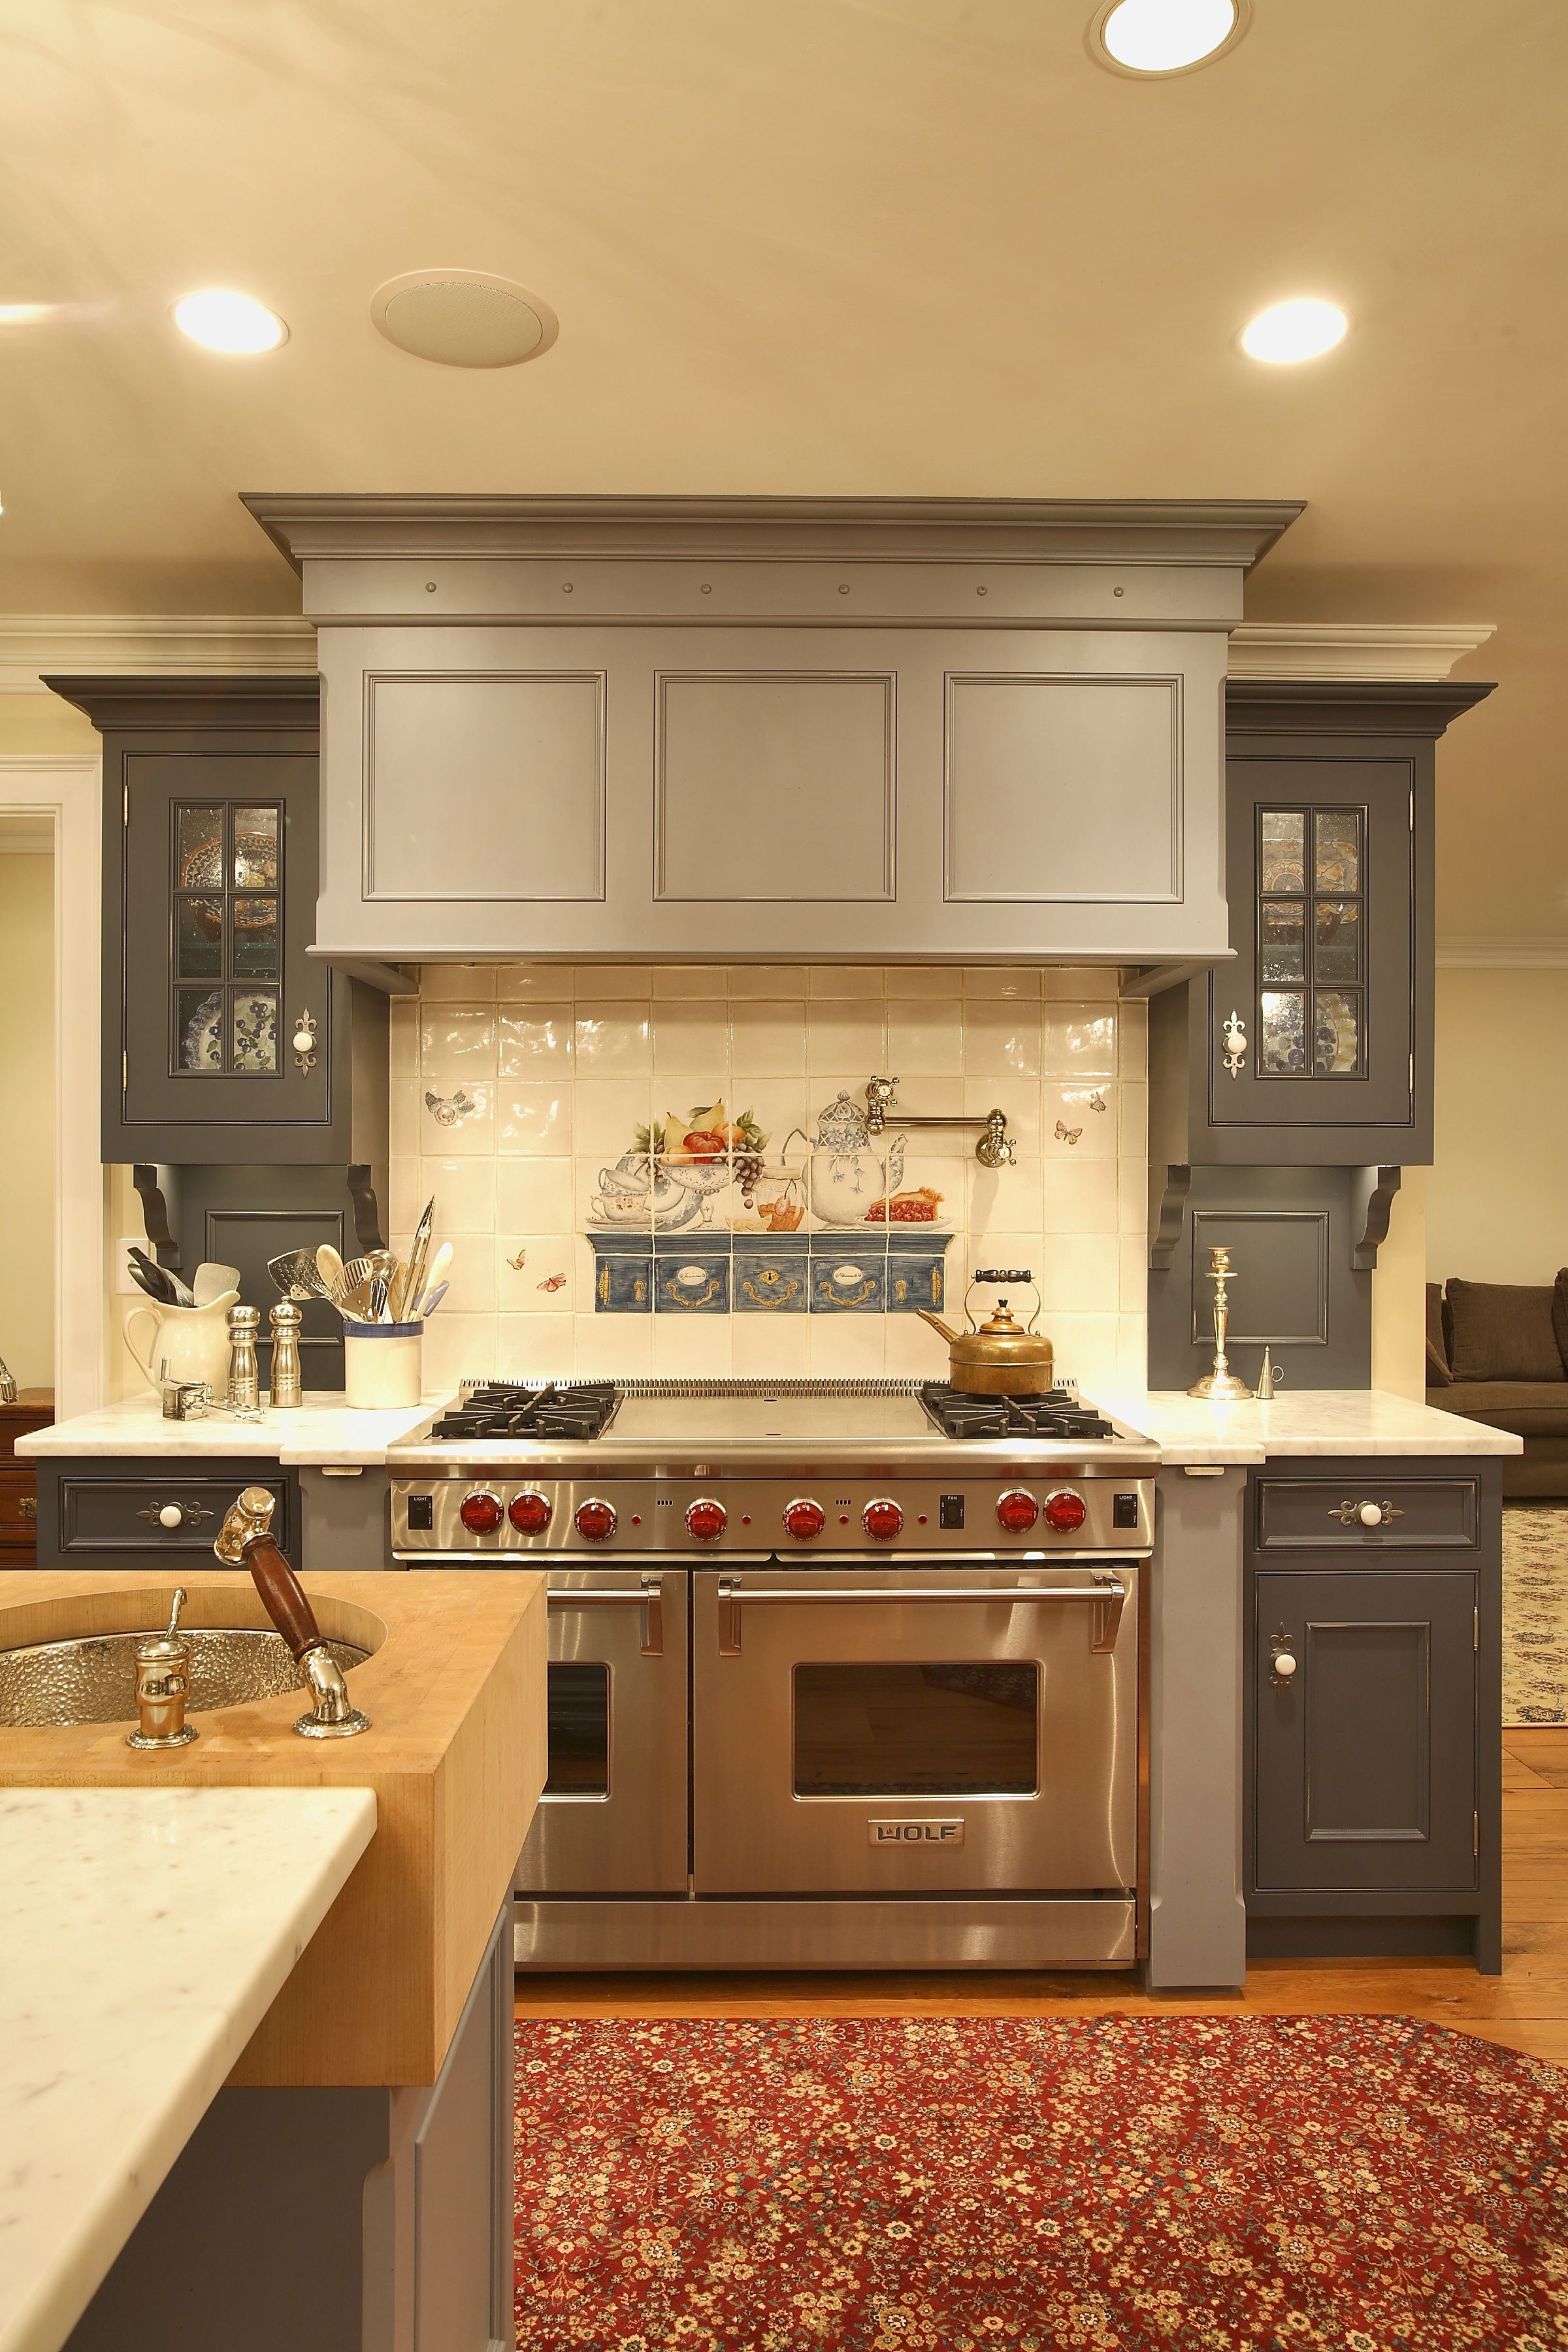 Kitchen Cabinets With Red Knobs Stainless Steel Stove With Red Knobs Ceramic Tile Back Splash